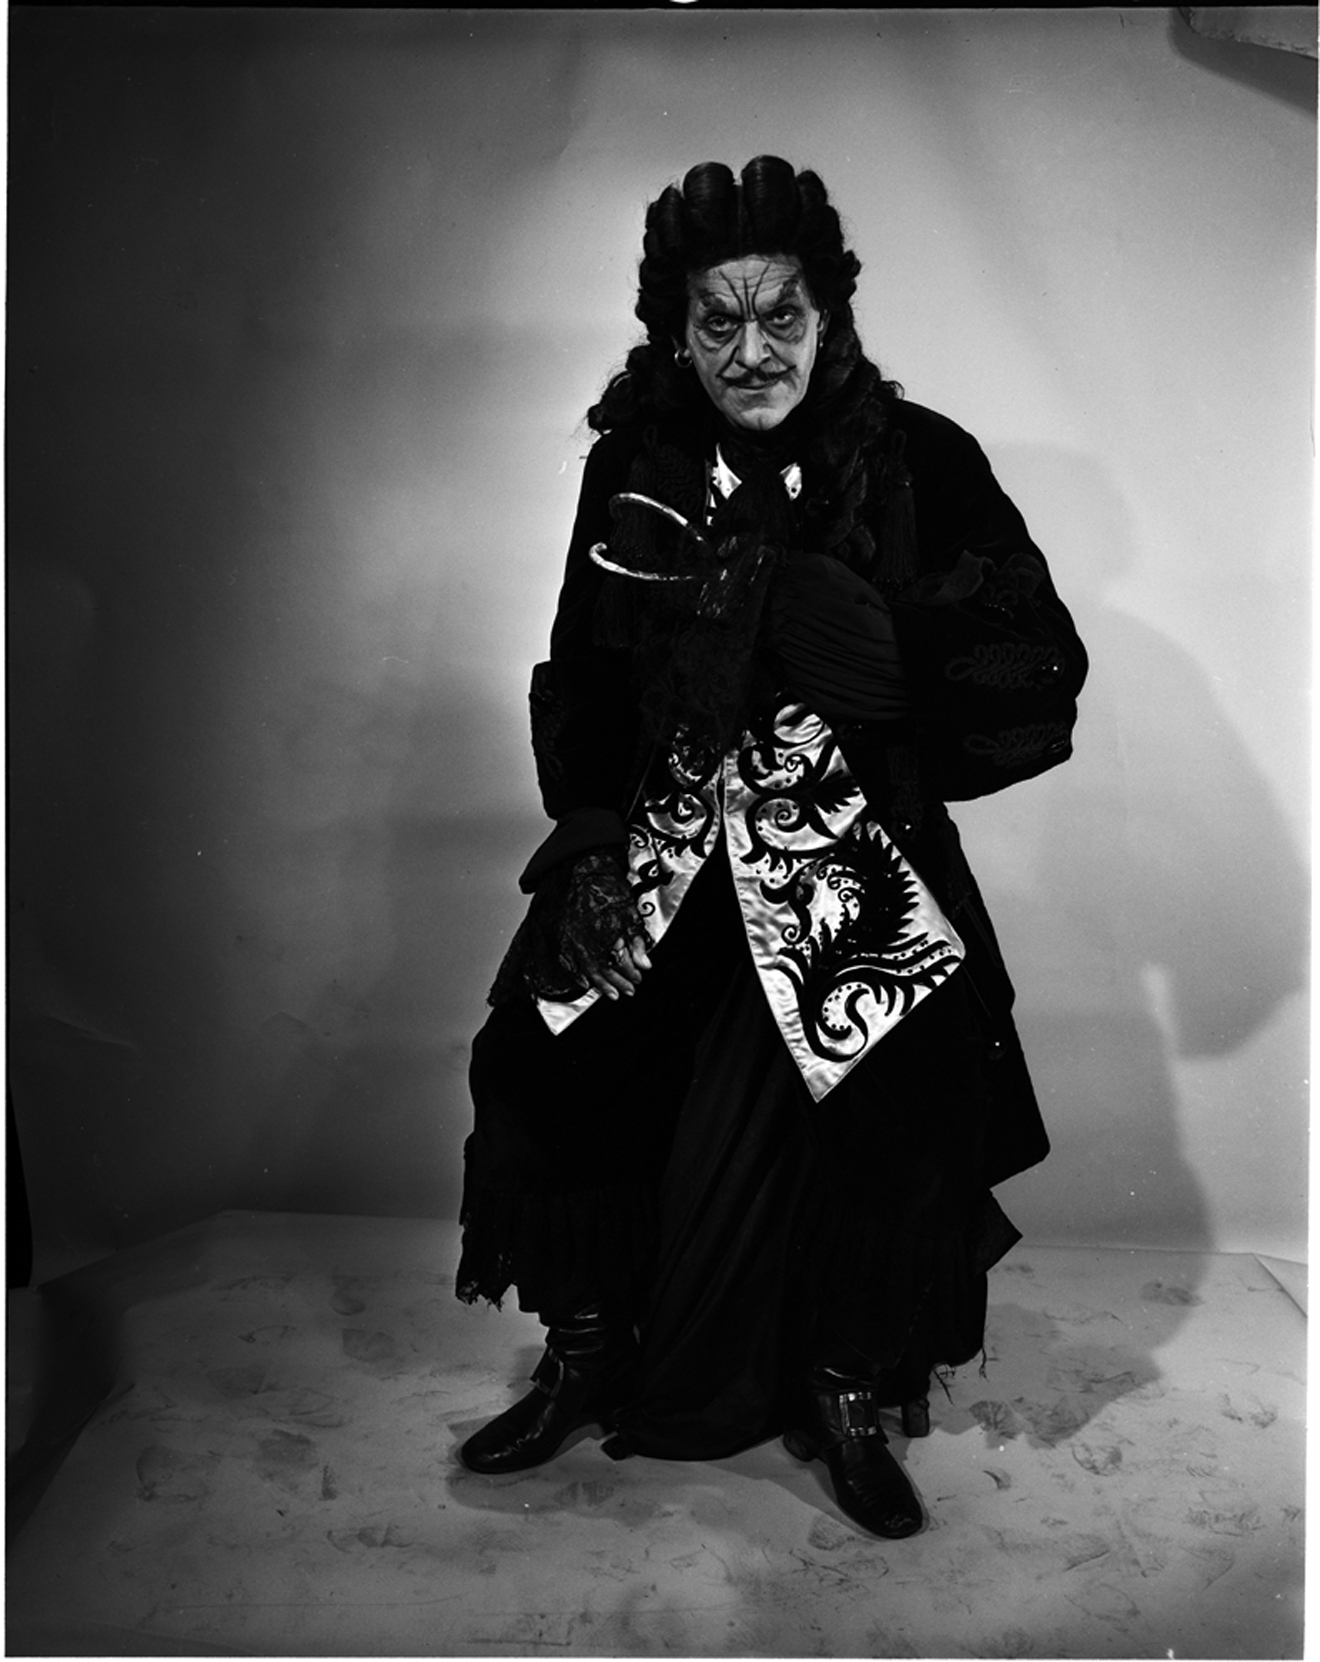 Lucas-Monroe. [Boris Karloff as Captain Hook], 1950. Museum of the City of New York. 80.104.1.2163